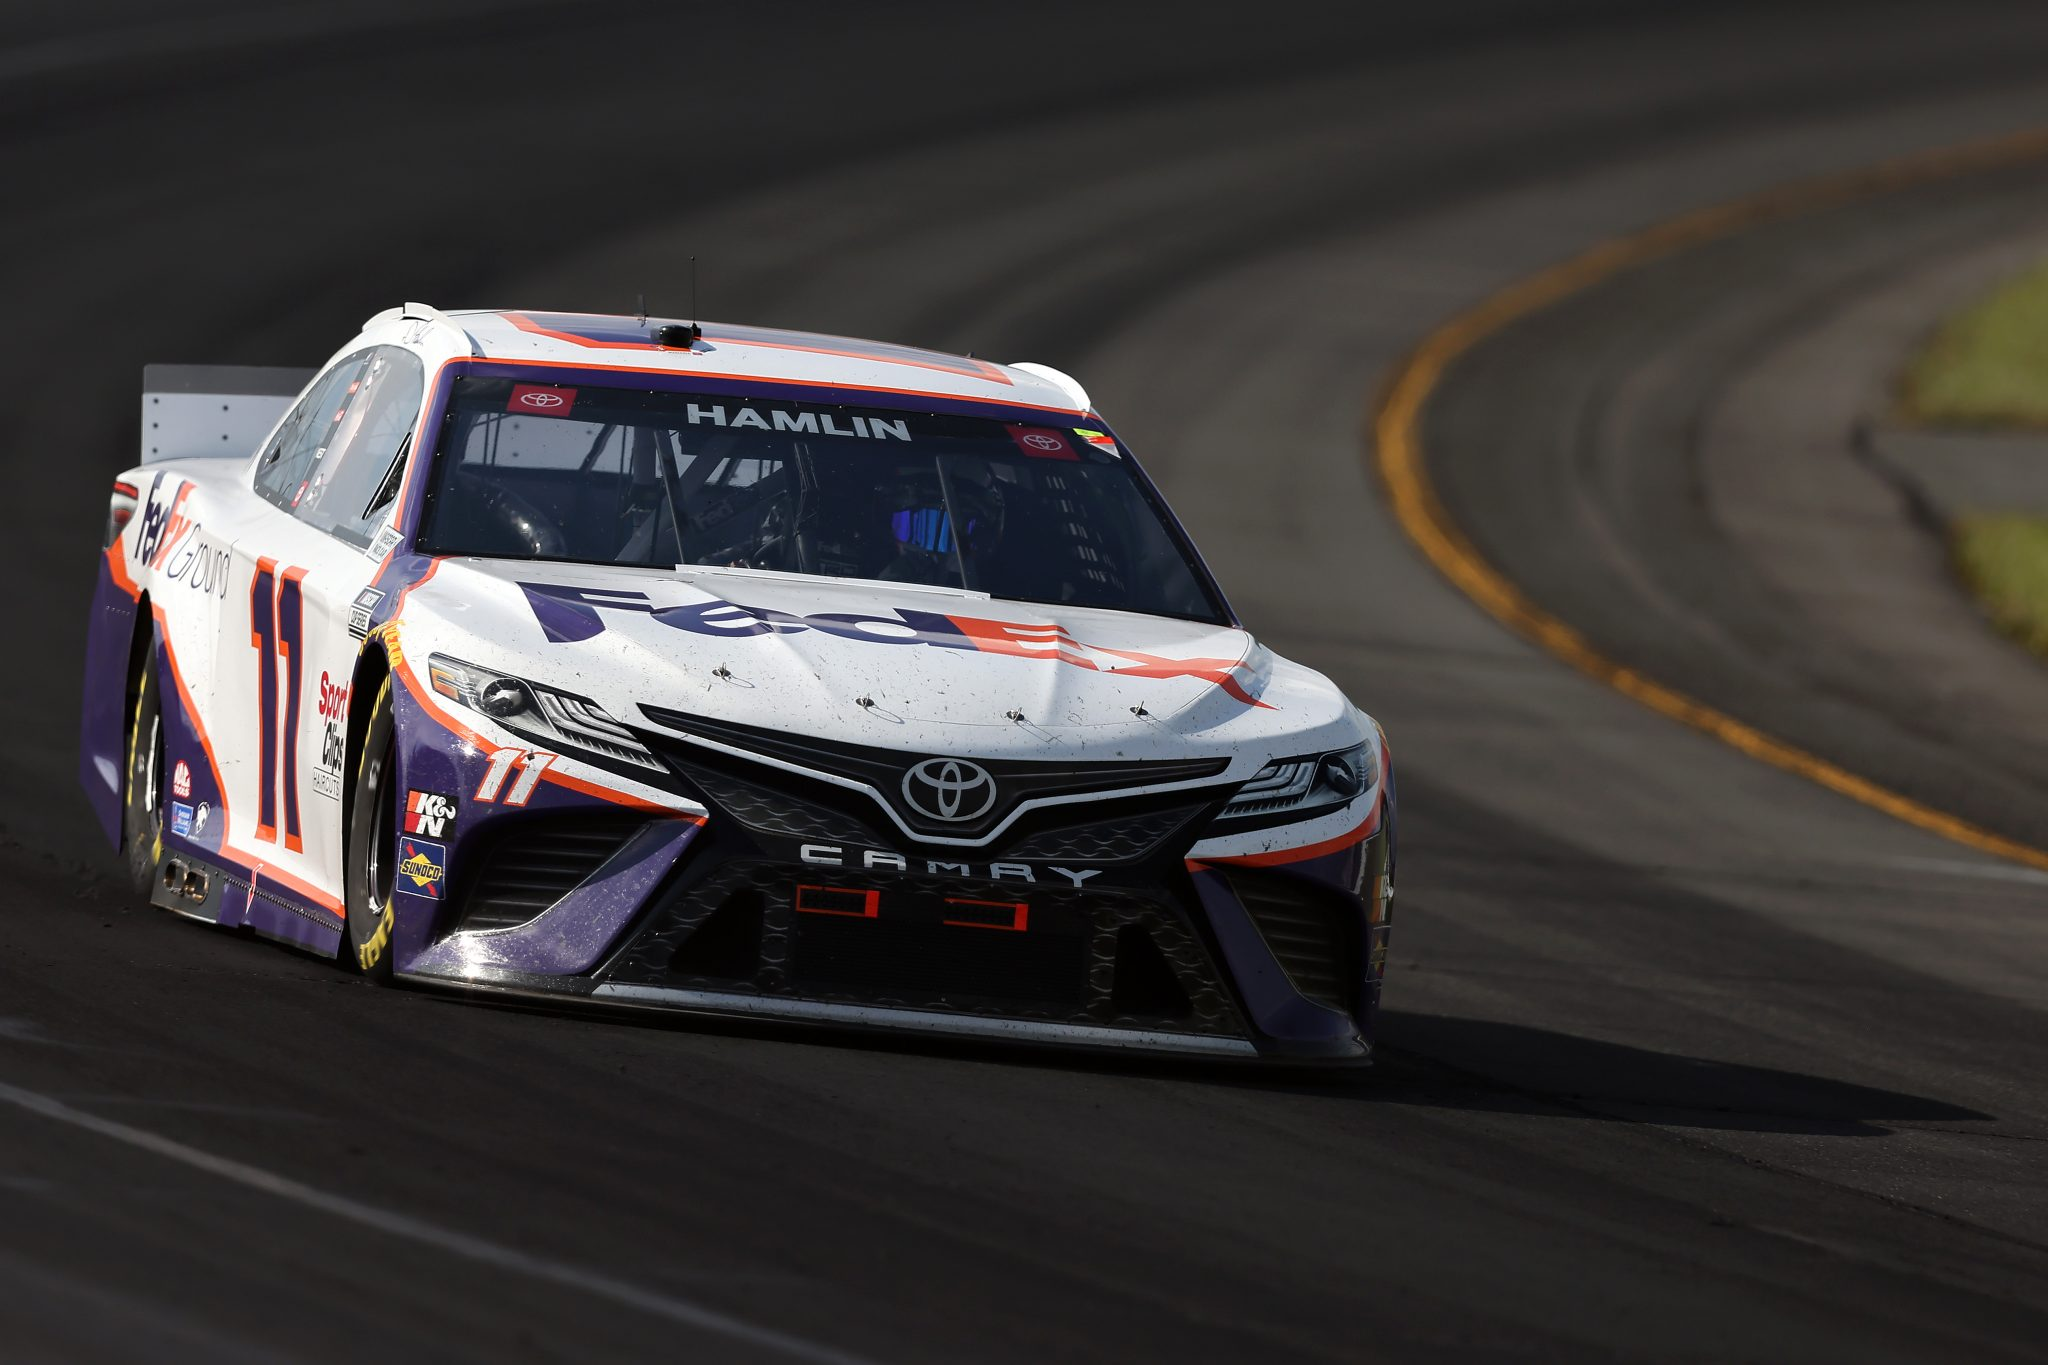 LONG POND, PENNSYLVANIA - JUNE 27: Denny Hamlin, driver of the #11 FedEx Ground Toyota, drives during the NASCAR Cup Series Explore the Pocono Mountains 350 at Pocono Raceway on June 27, 2021 in Long Pond, Pennsylvania. (Photo by James Gilbert/Getty Images) | Getty Images